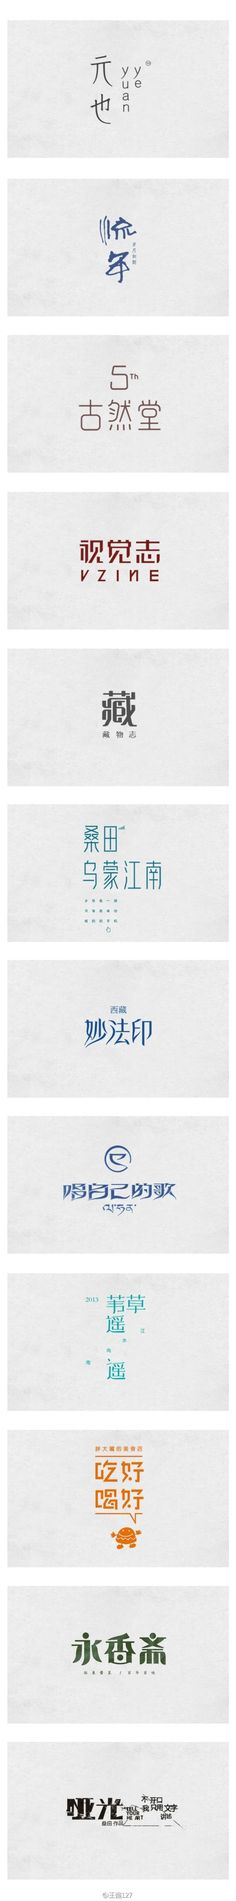 67 new ideas for sport logo typography graphic design Typo Design, Word Design, Typographic Design, Graphic Design Typography, Lettering Design, Chinese Fonts Design, Japanese Graphic Design, Branding, Japanese Typography